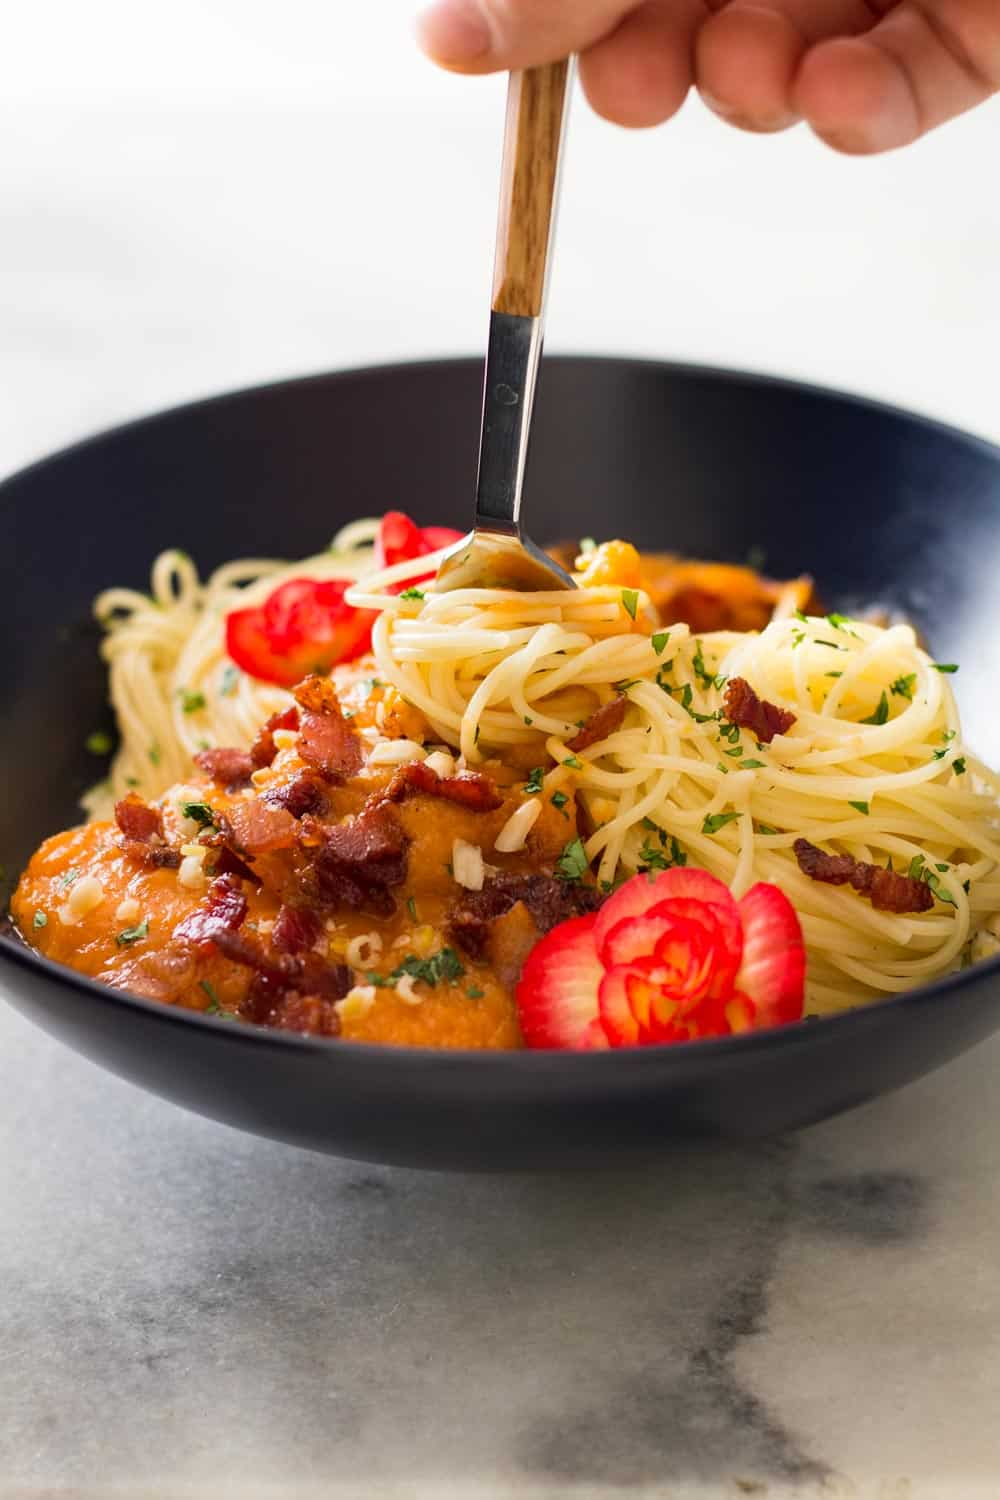 Fall starts tomorrow! Let's make some roasted Butternut Squash Pasta Sauce with Bacon on top of your favorite pasta. We have to celebrate the start of the most beautiful season of the year!